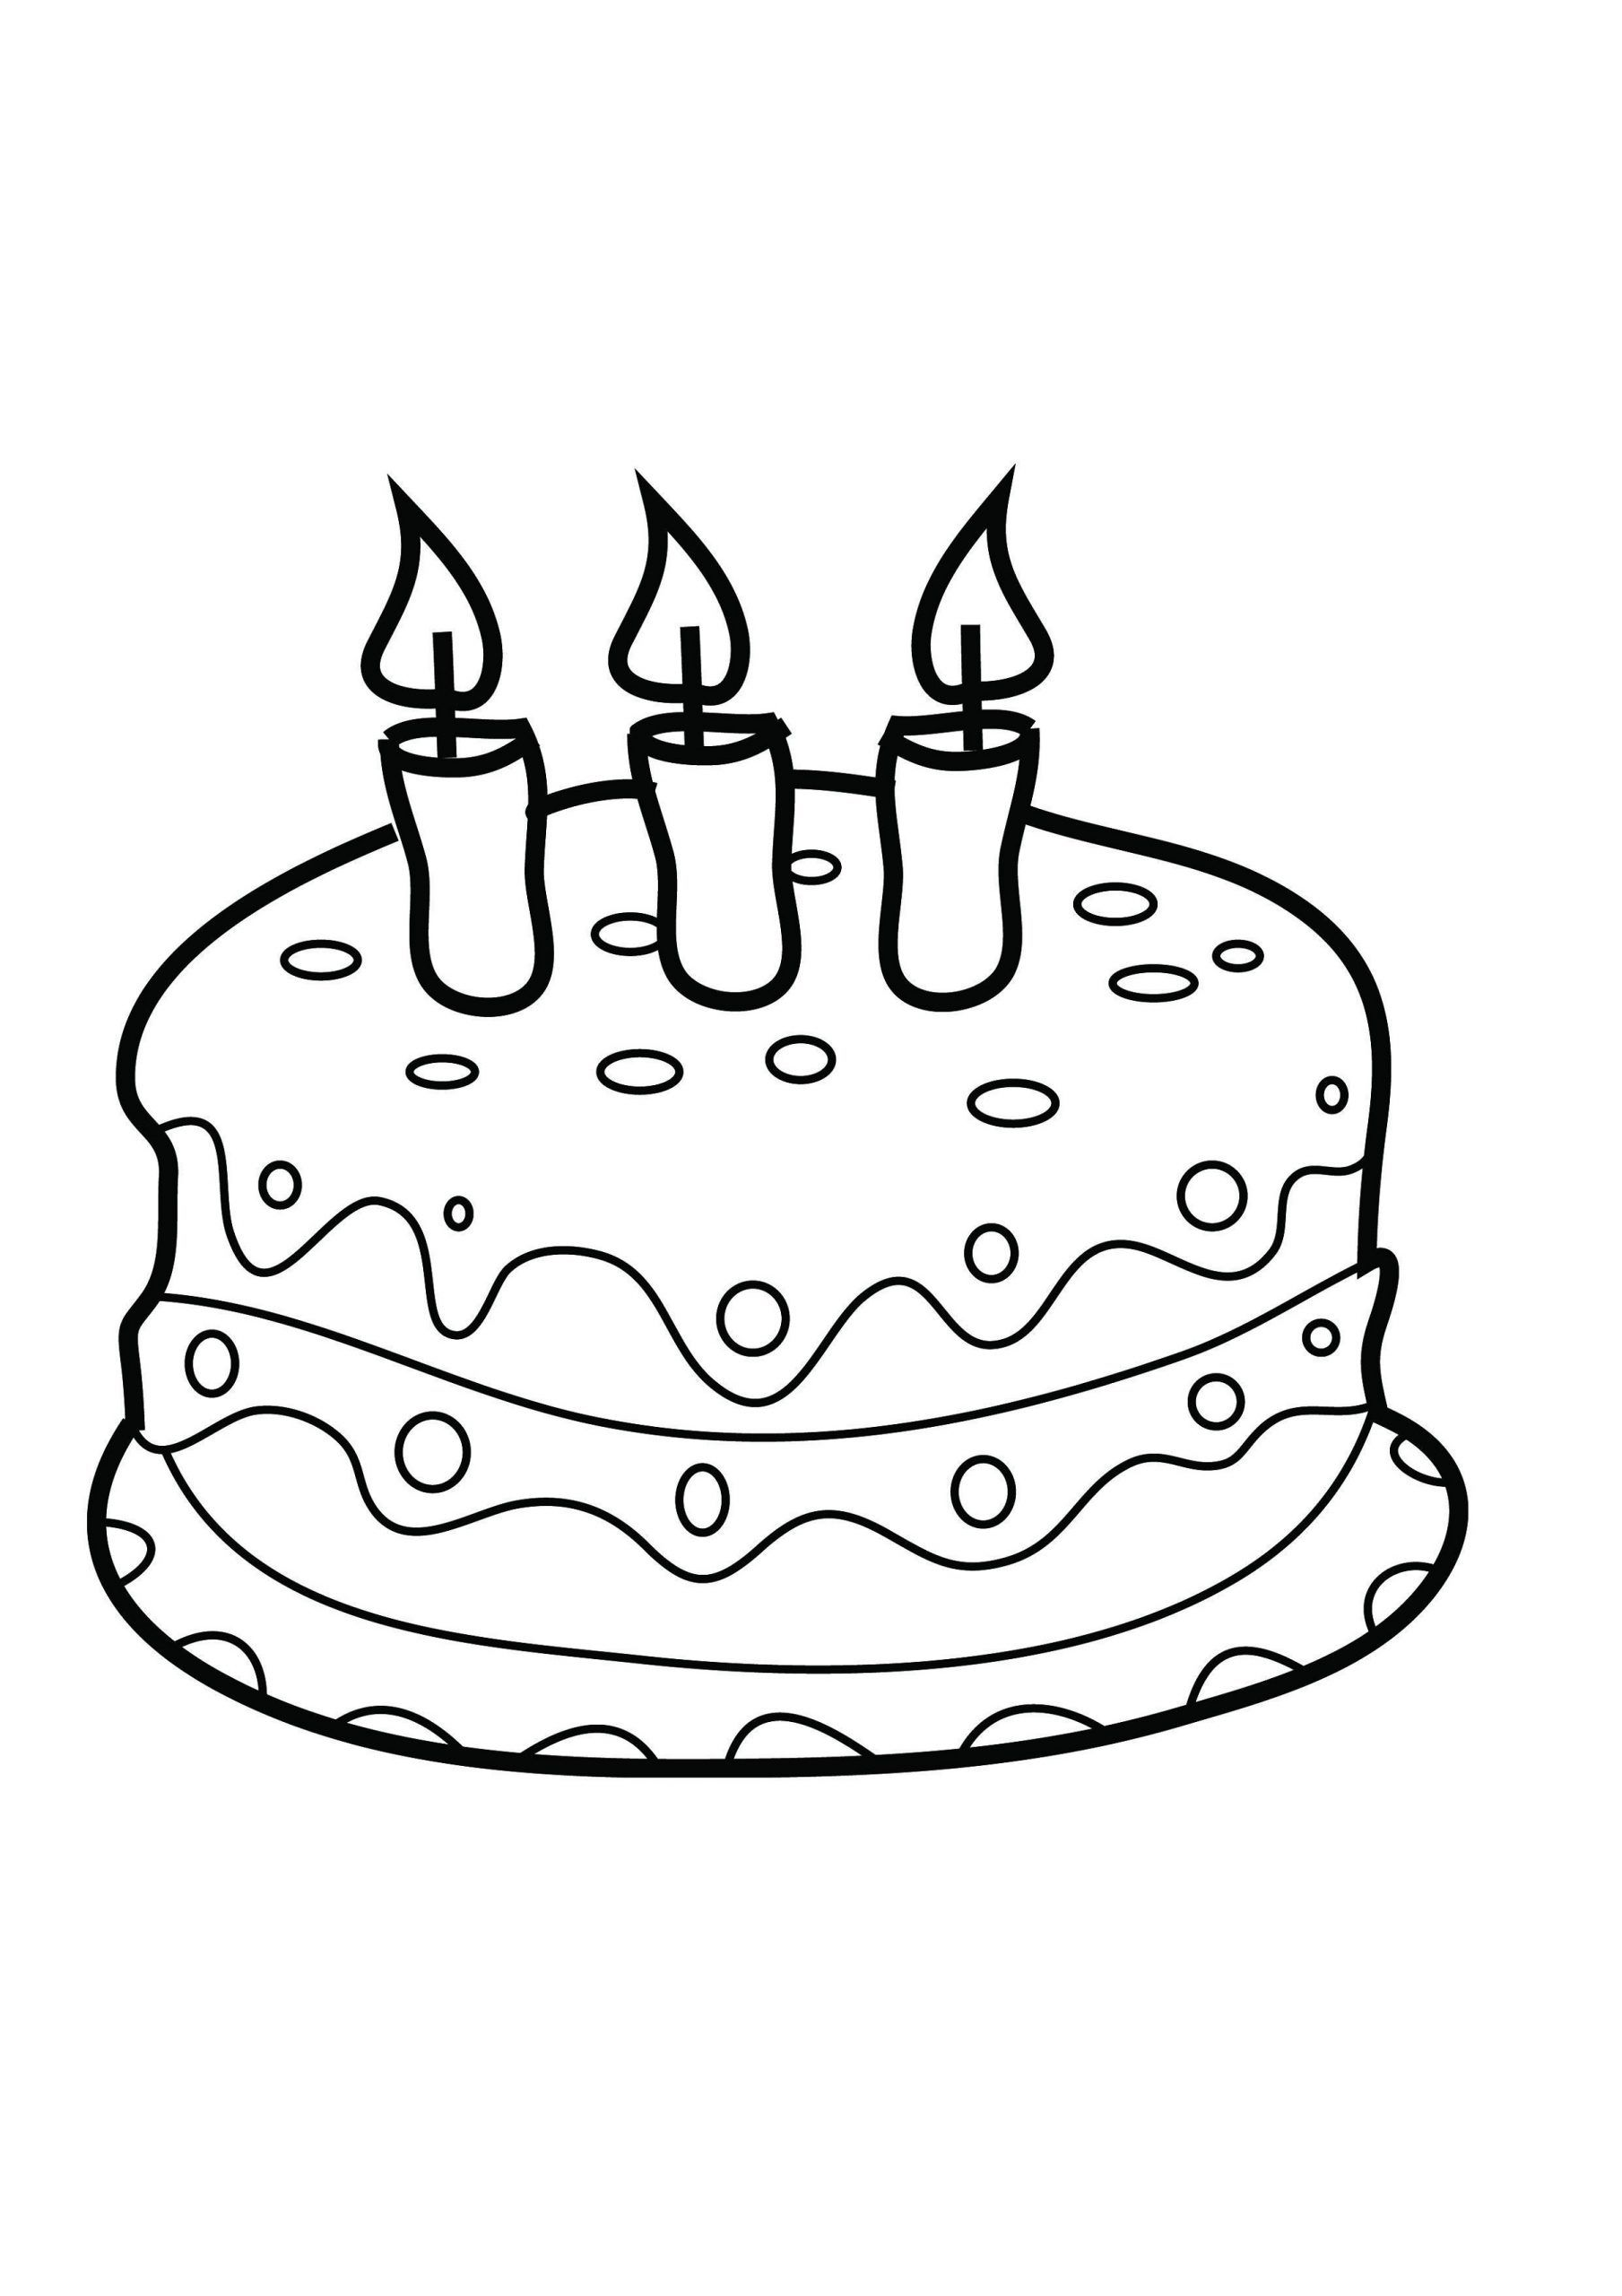 birthday cake pictures to color free free printable birthday cake coloring pages for kids to birthday cake pictures color free